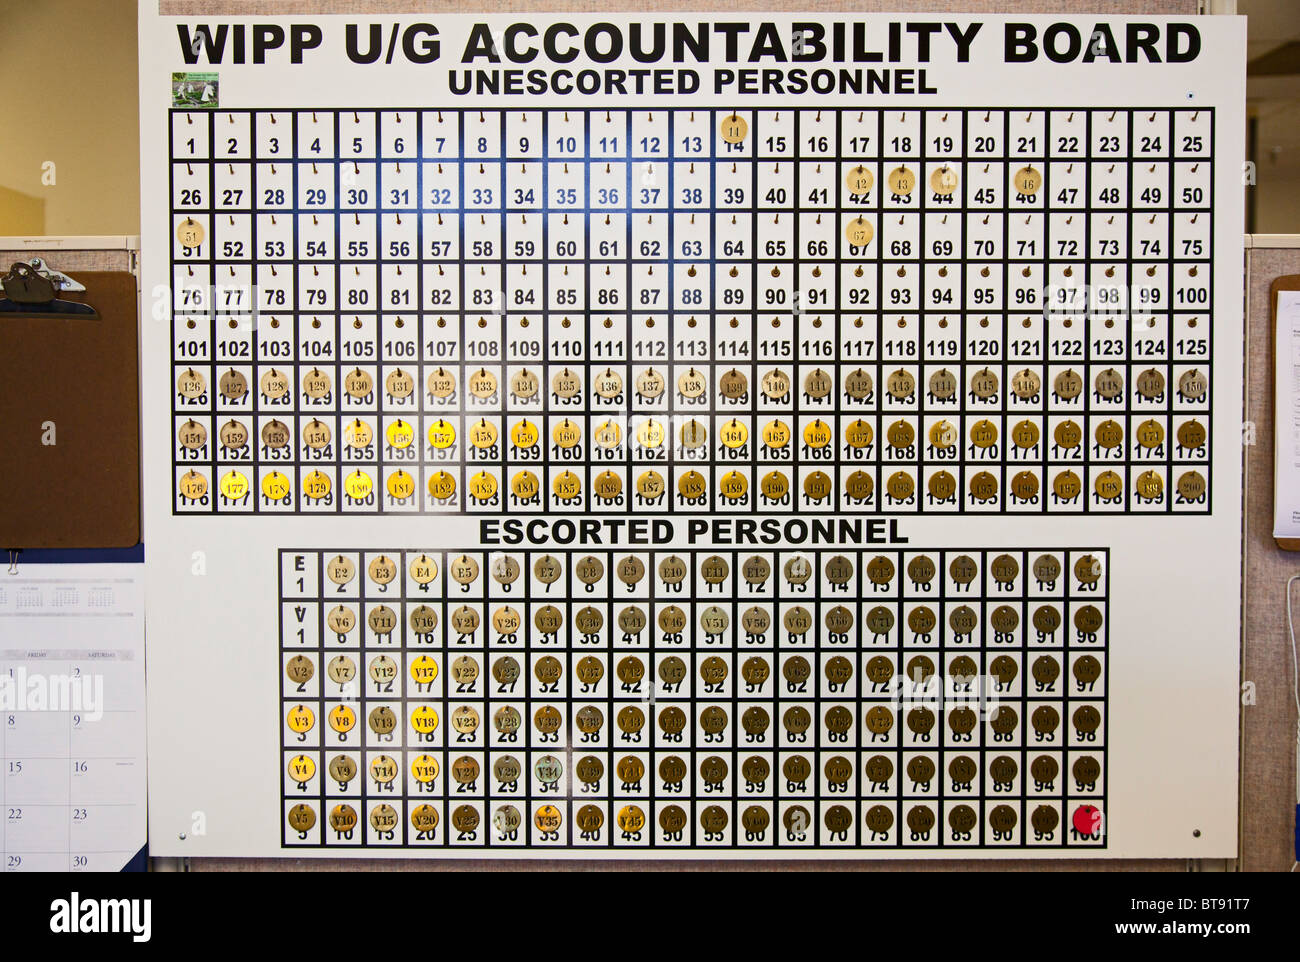 Underground Accountability Board at Nuclear Waste Storage Facility - Stock Image